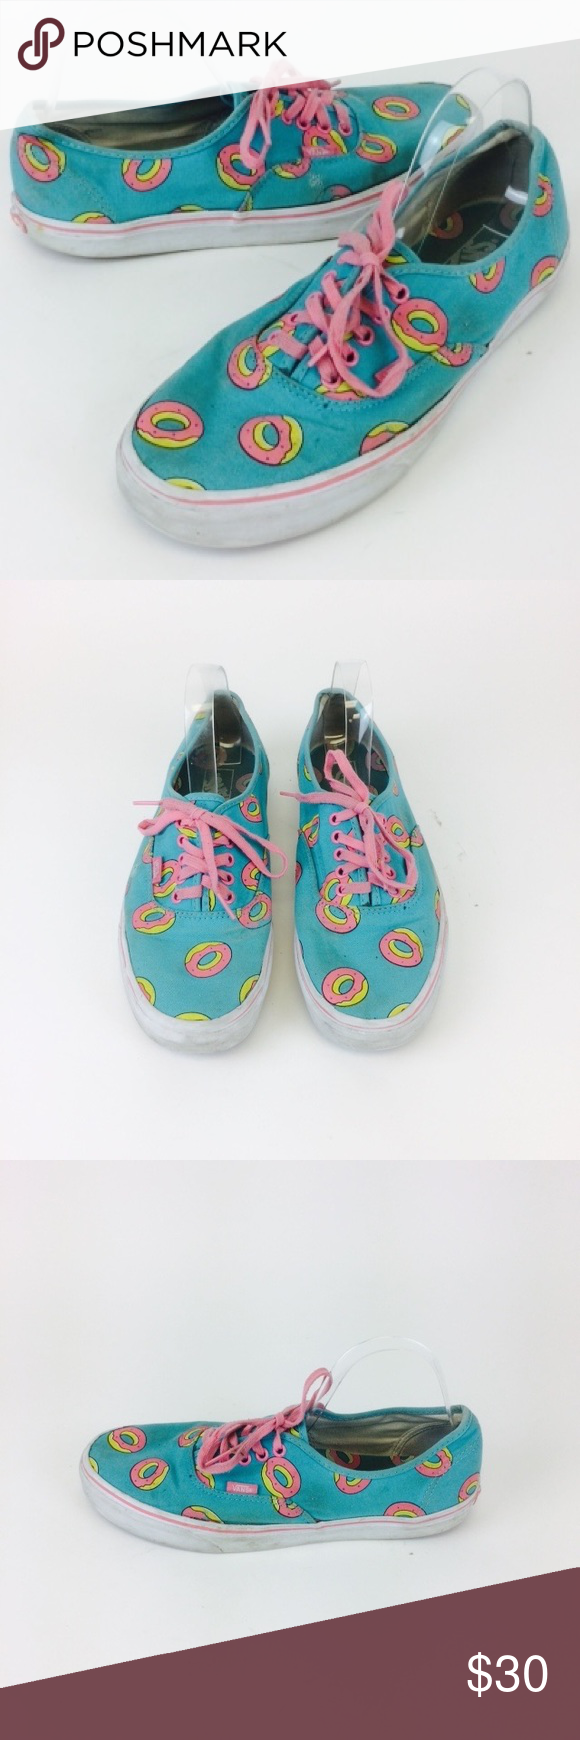 39541d03a2de Vans x Odd Future OFWGKTA Sneakers Size 11 Has one small scratch on one of  the sides of the sneakers